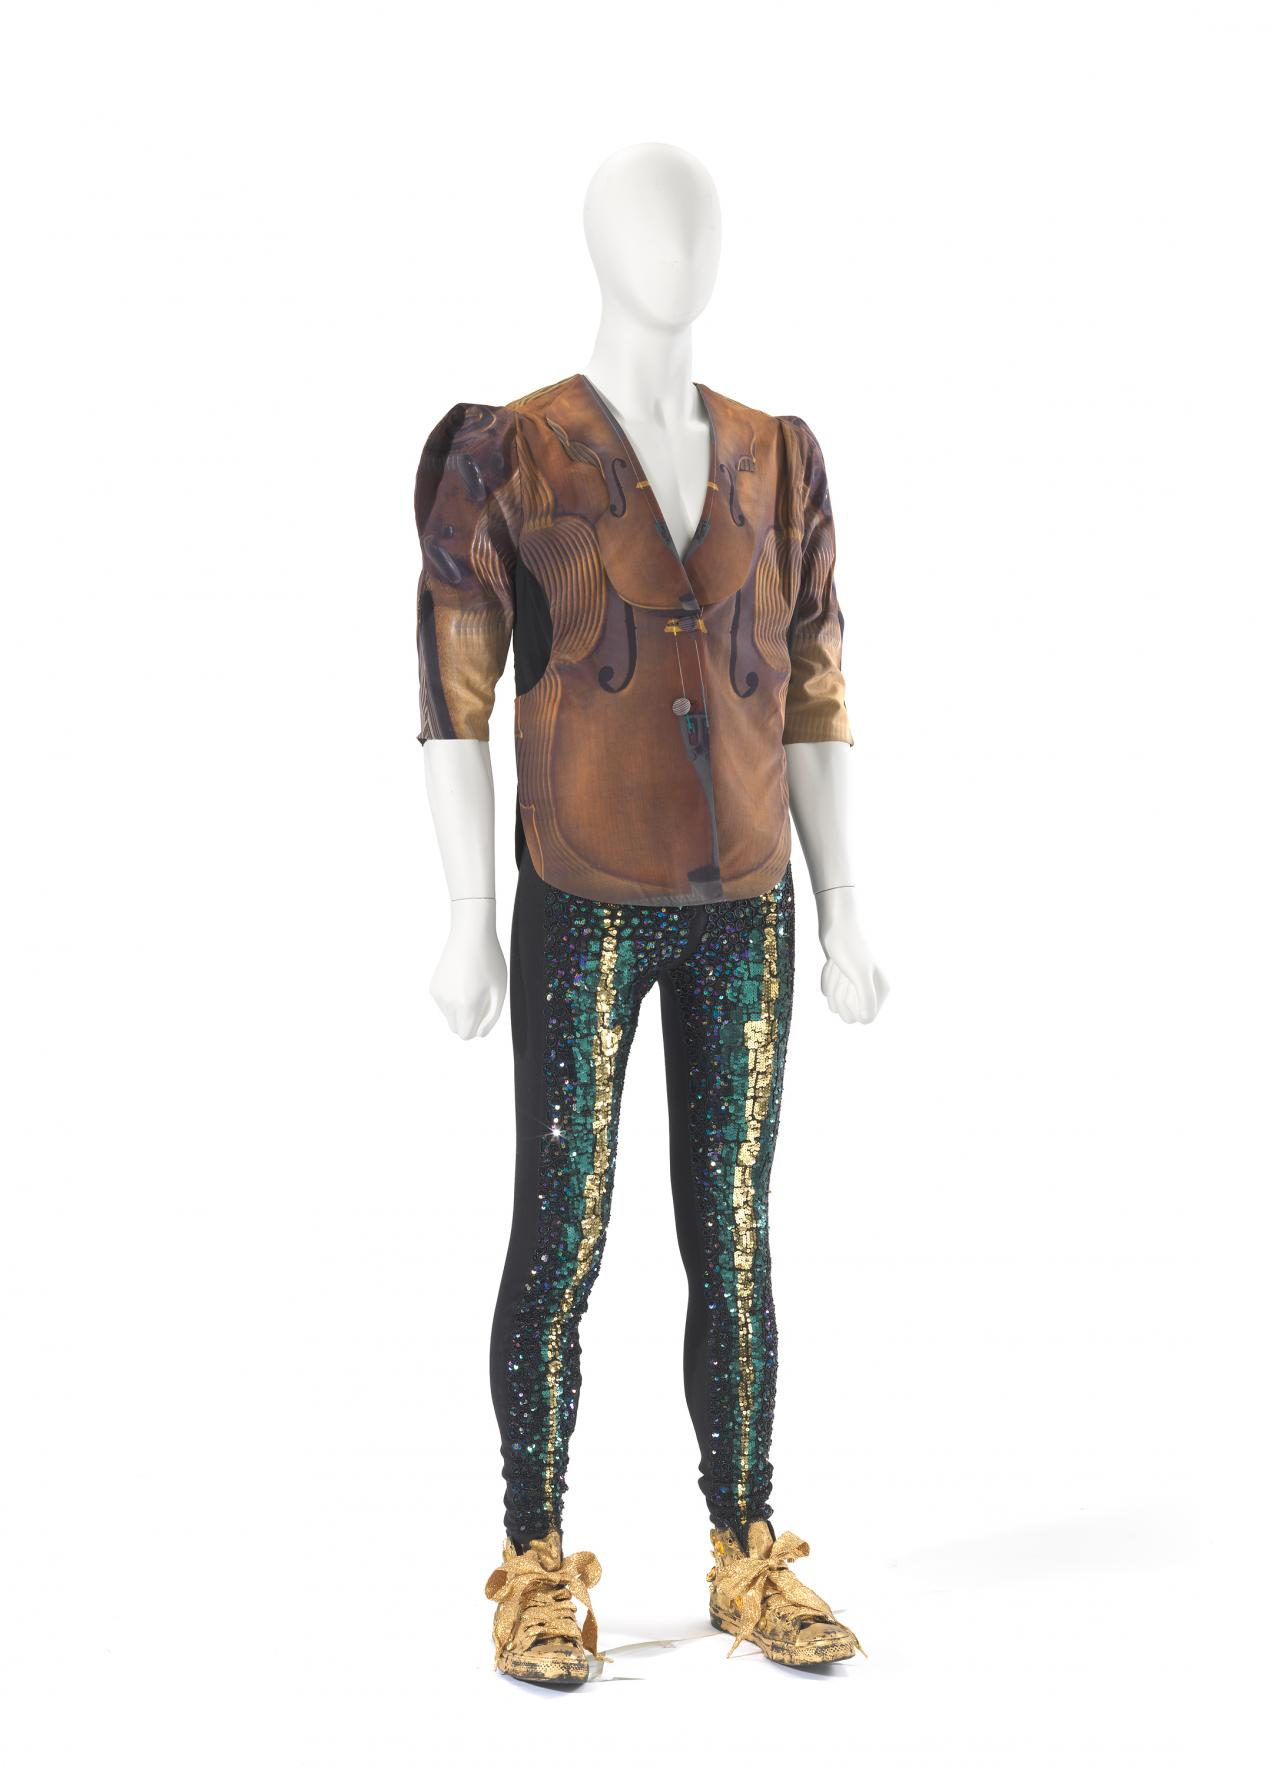 Violin jacket and Sequin scale leggings and runners